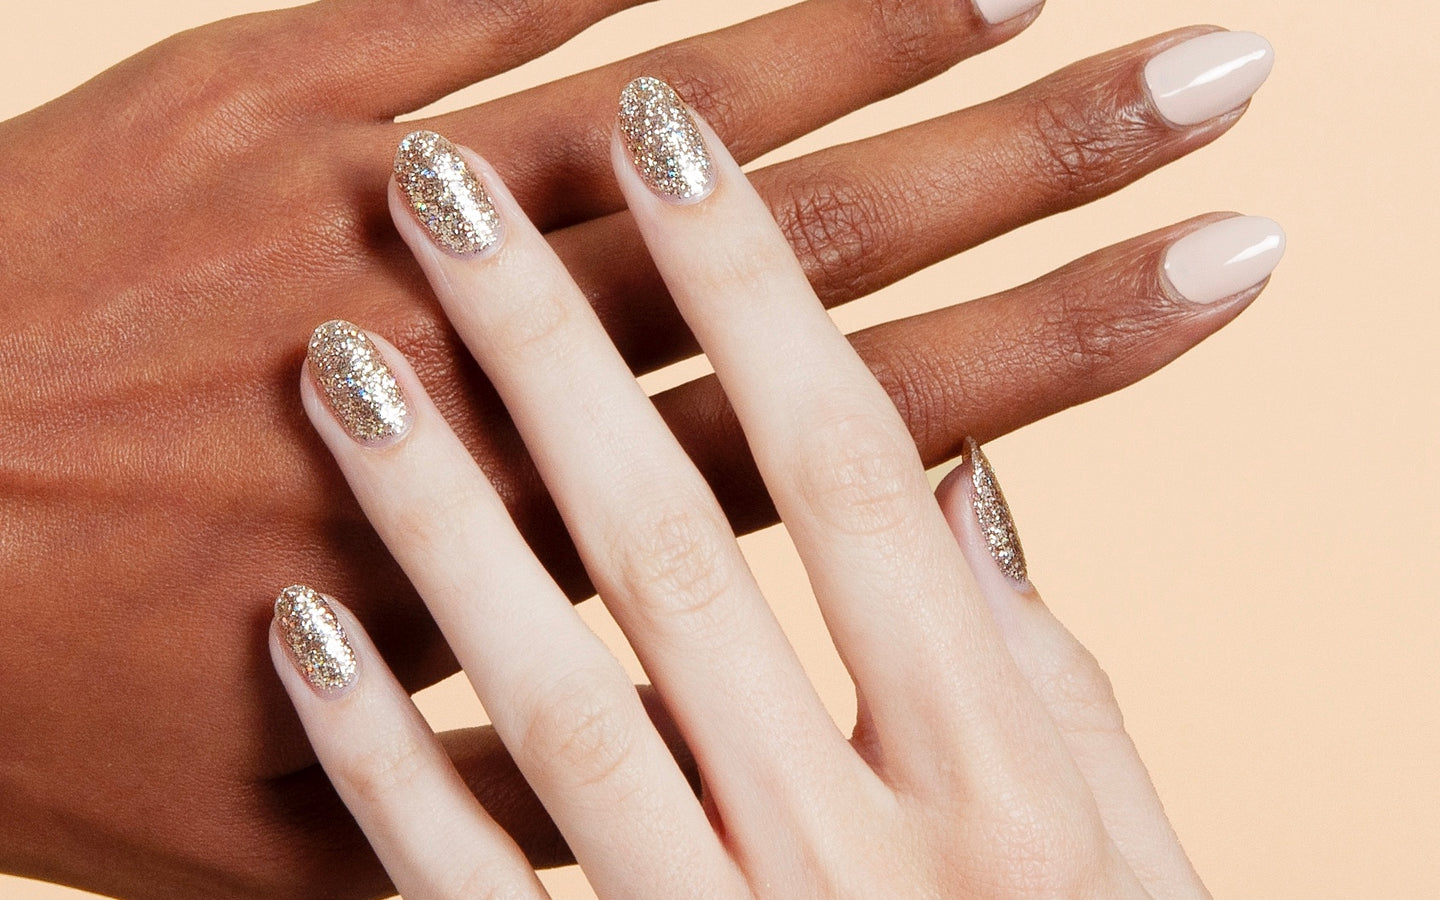 Paintbox's New Pre-Fall 2019 Nail Polish Duo Will Help You Hold Onto Summer A Little Bit Longer